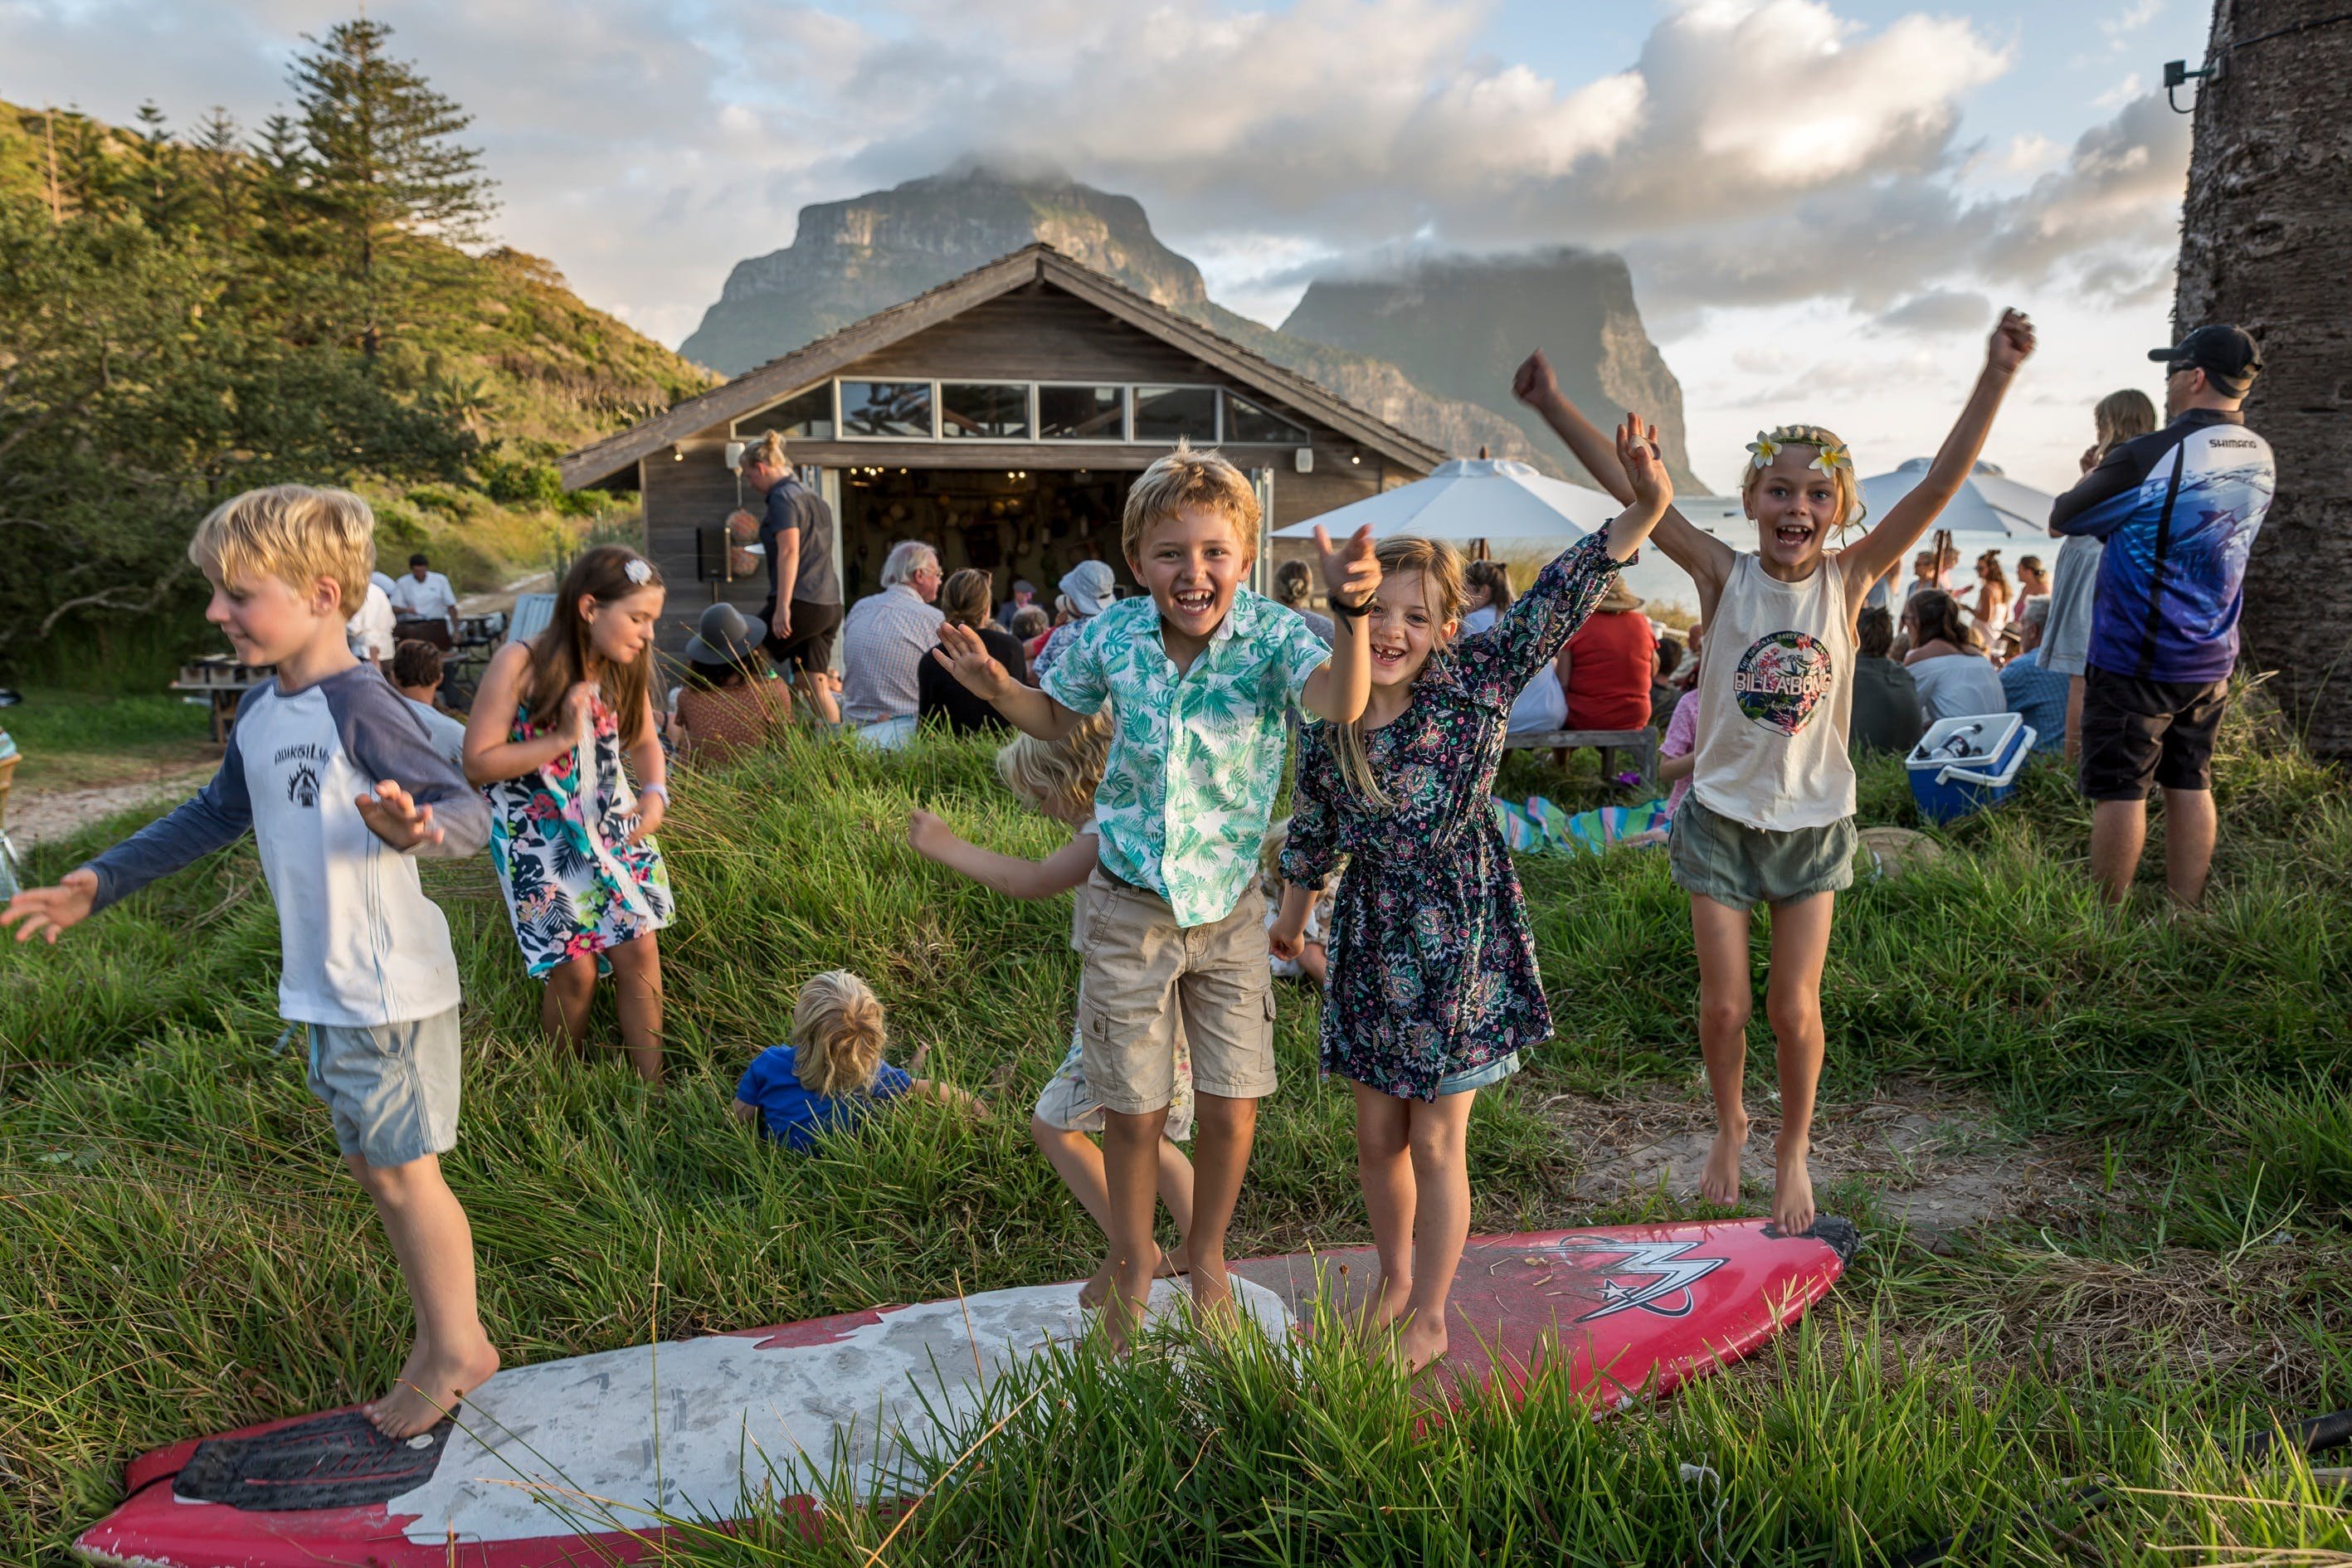 Spring Festival of Lord Howe Island - Accommodation Resorts